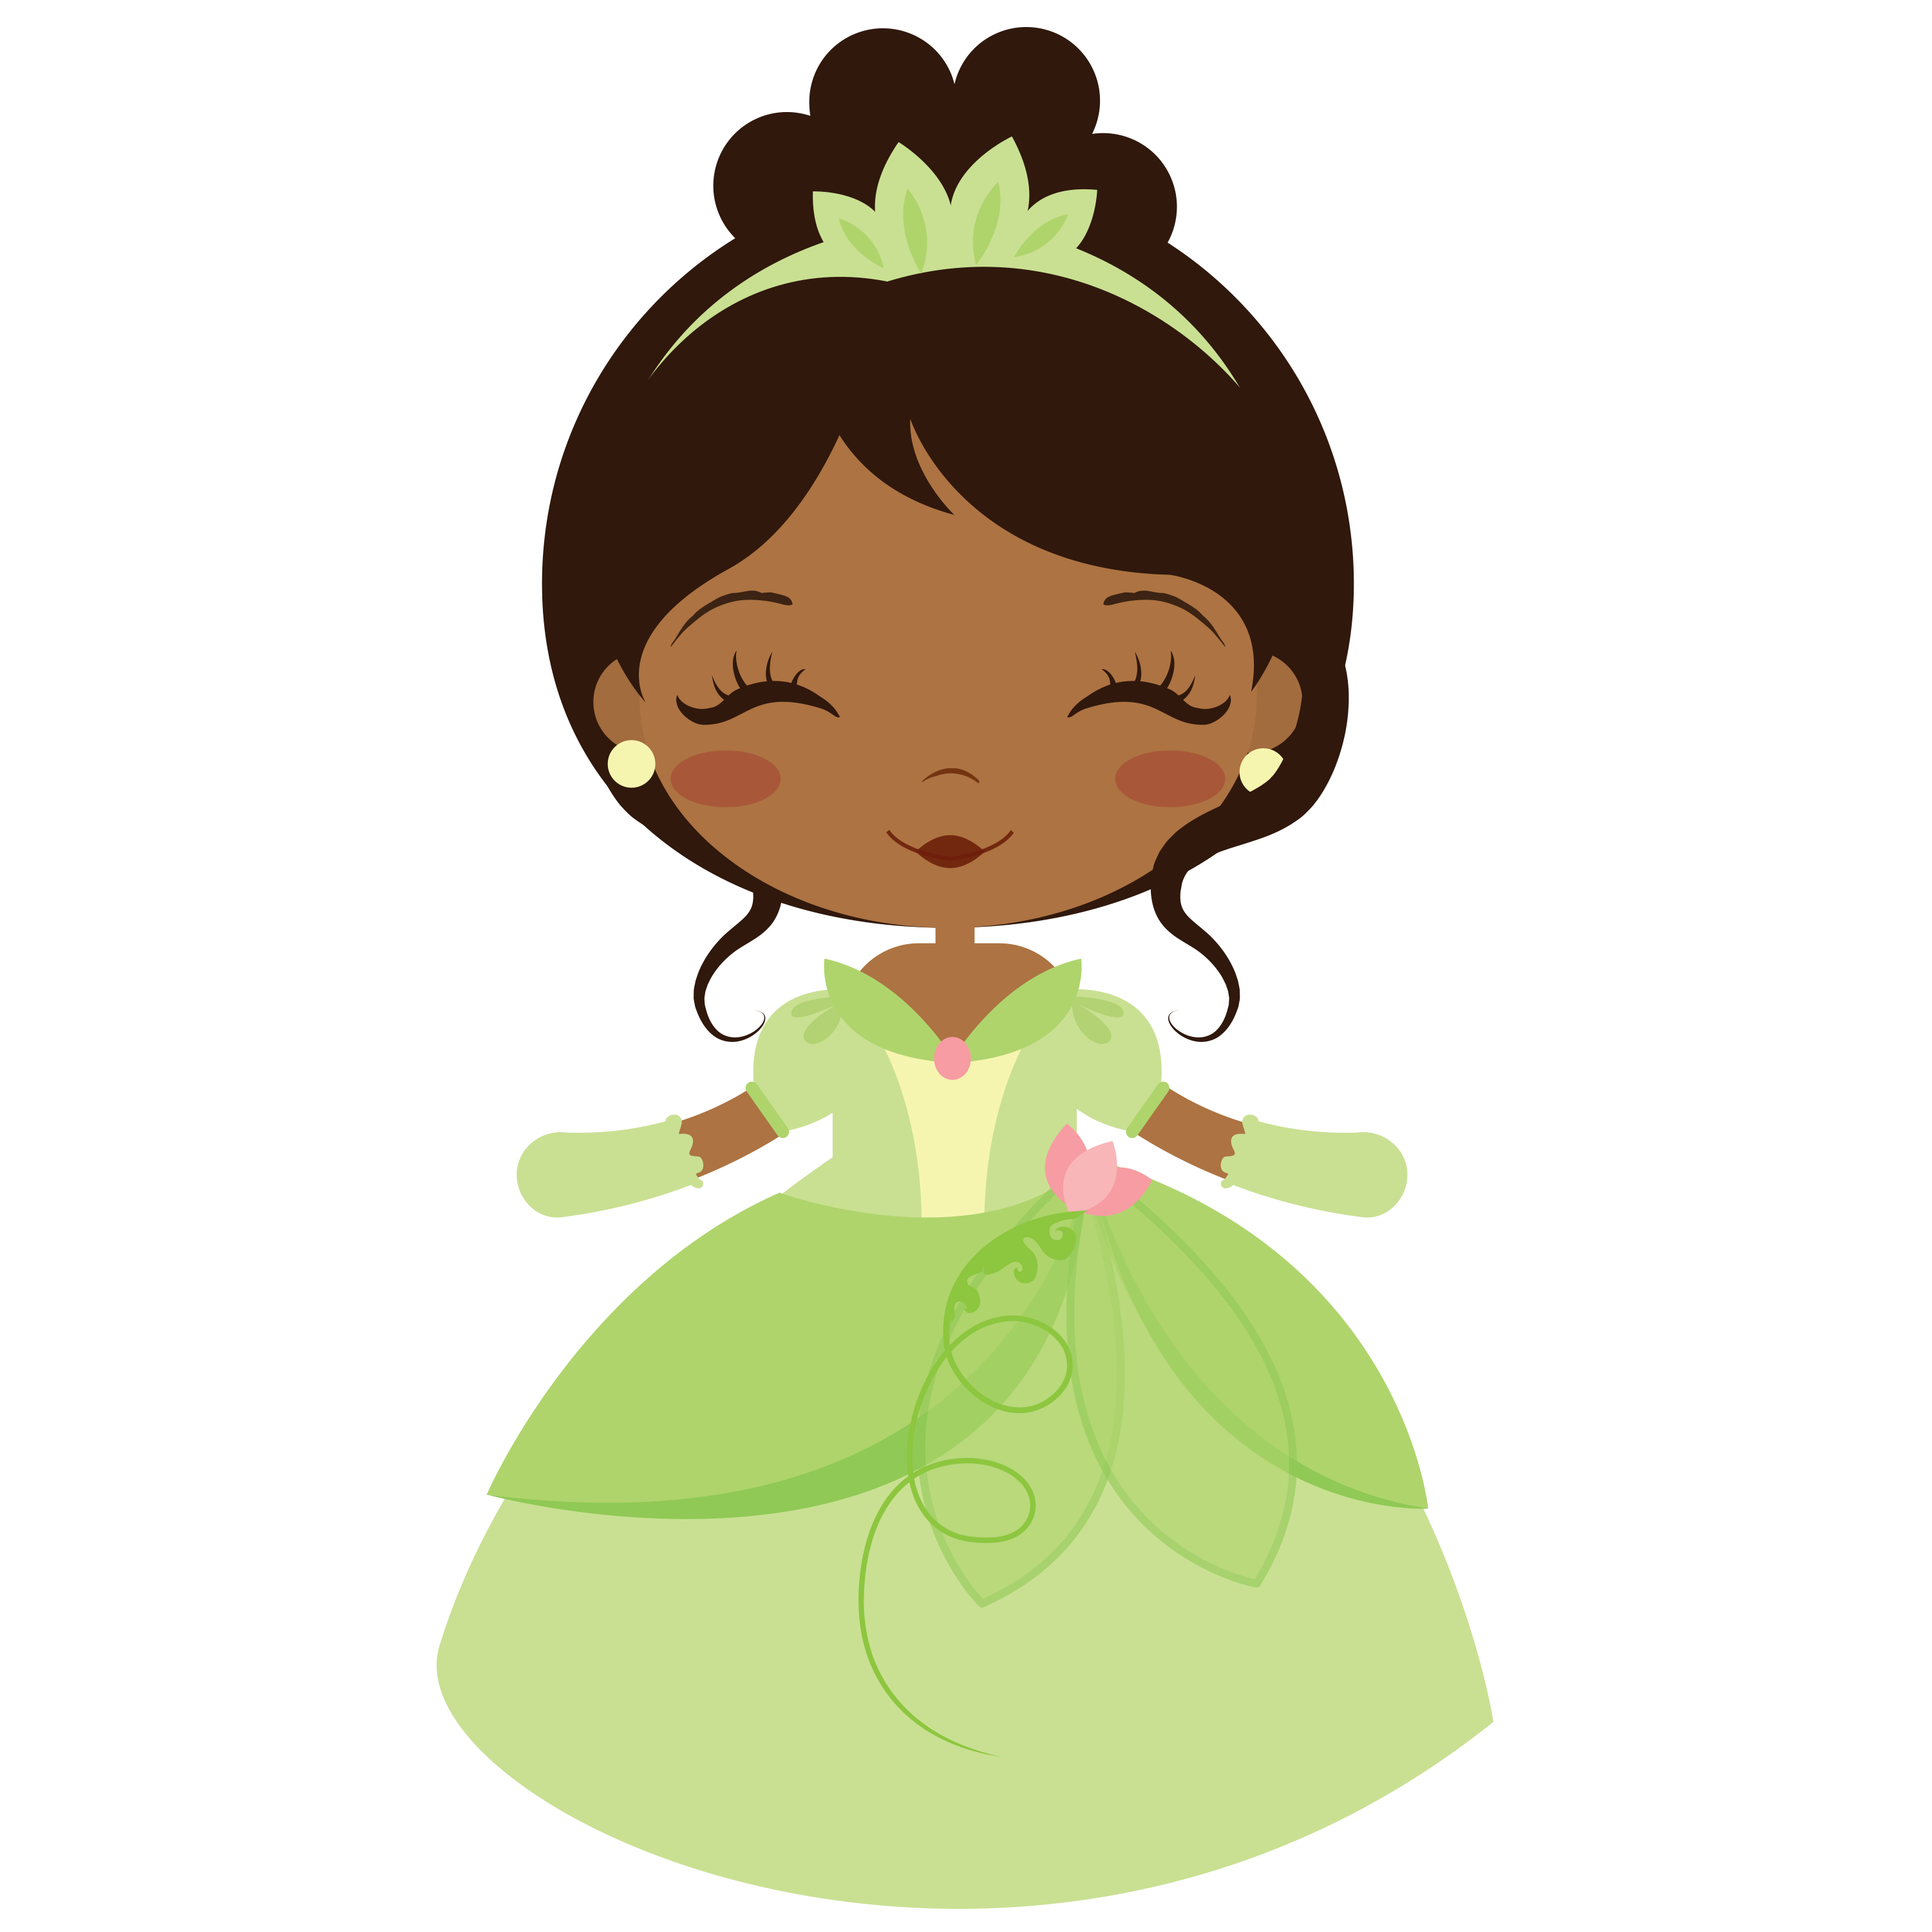 Witch clipart princess. Iwtfbvfudg fw png digistamps